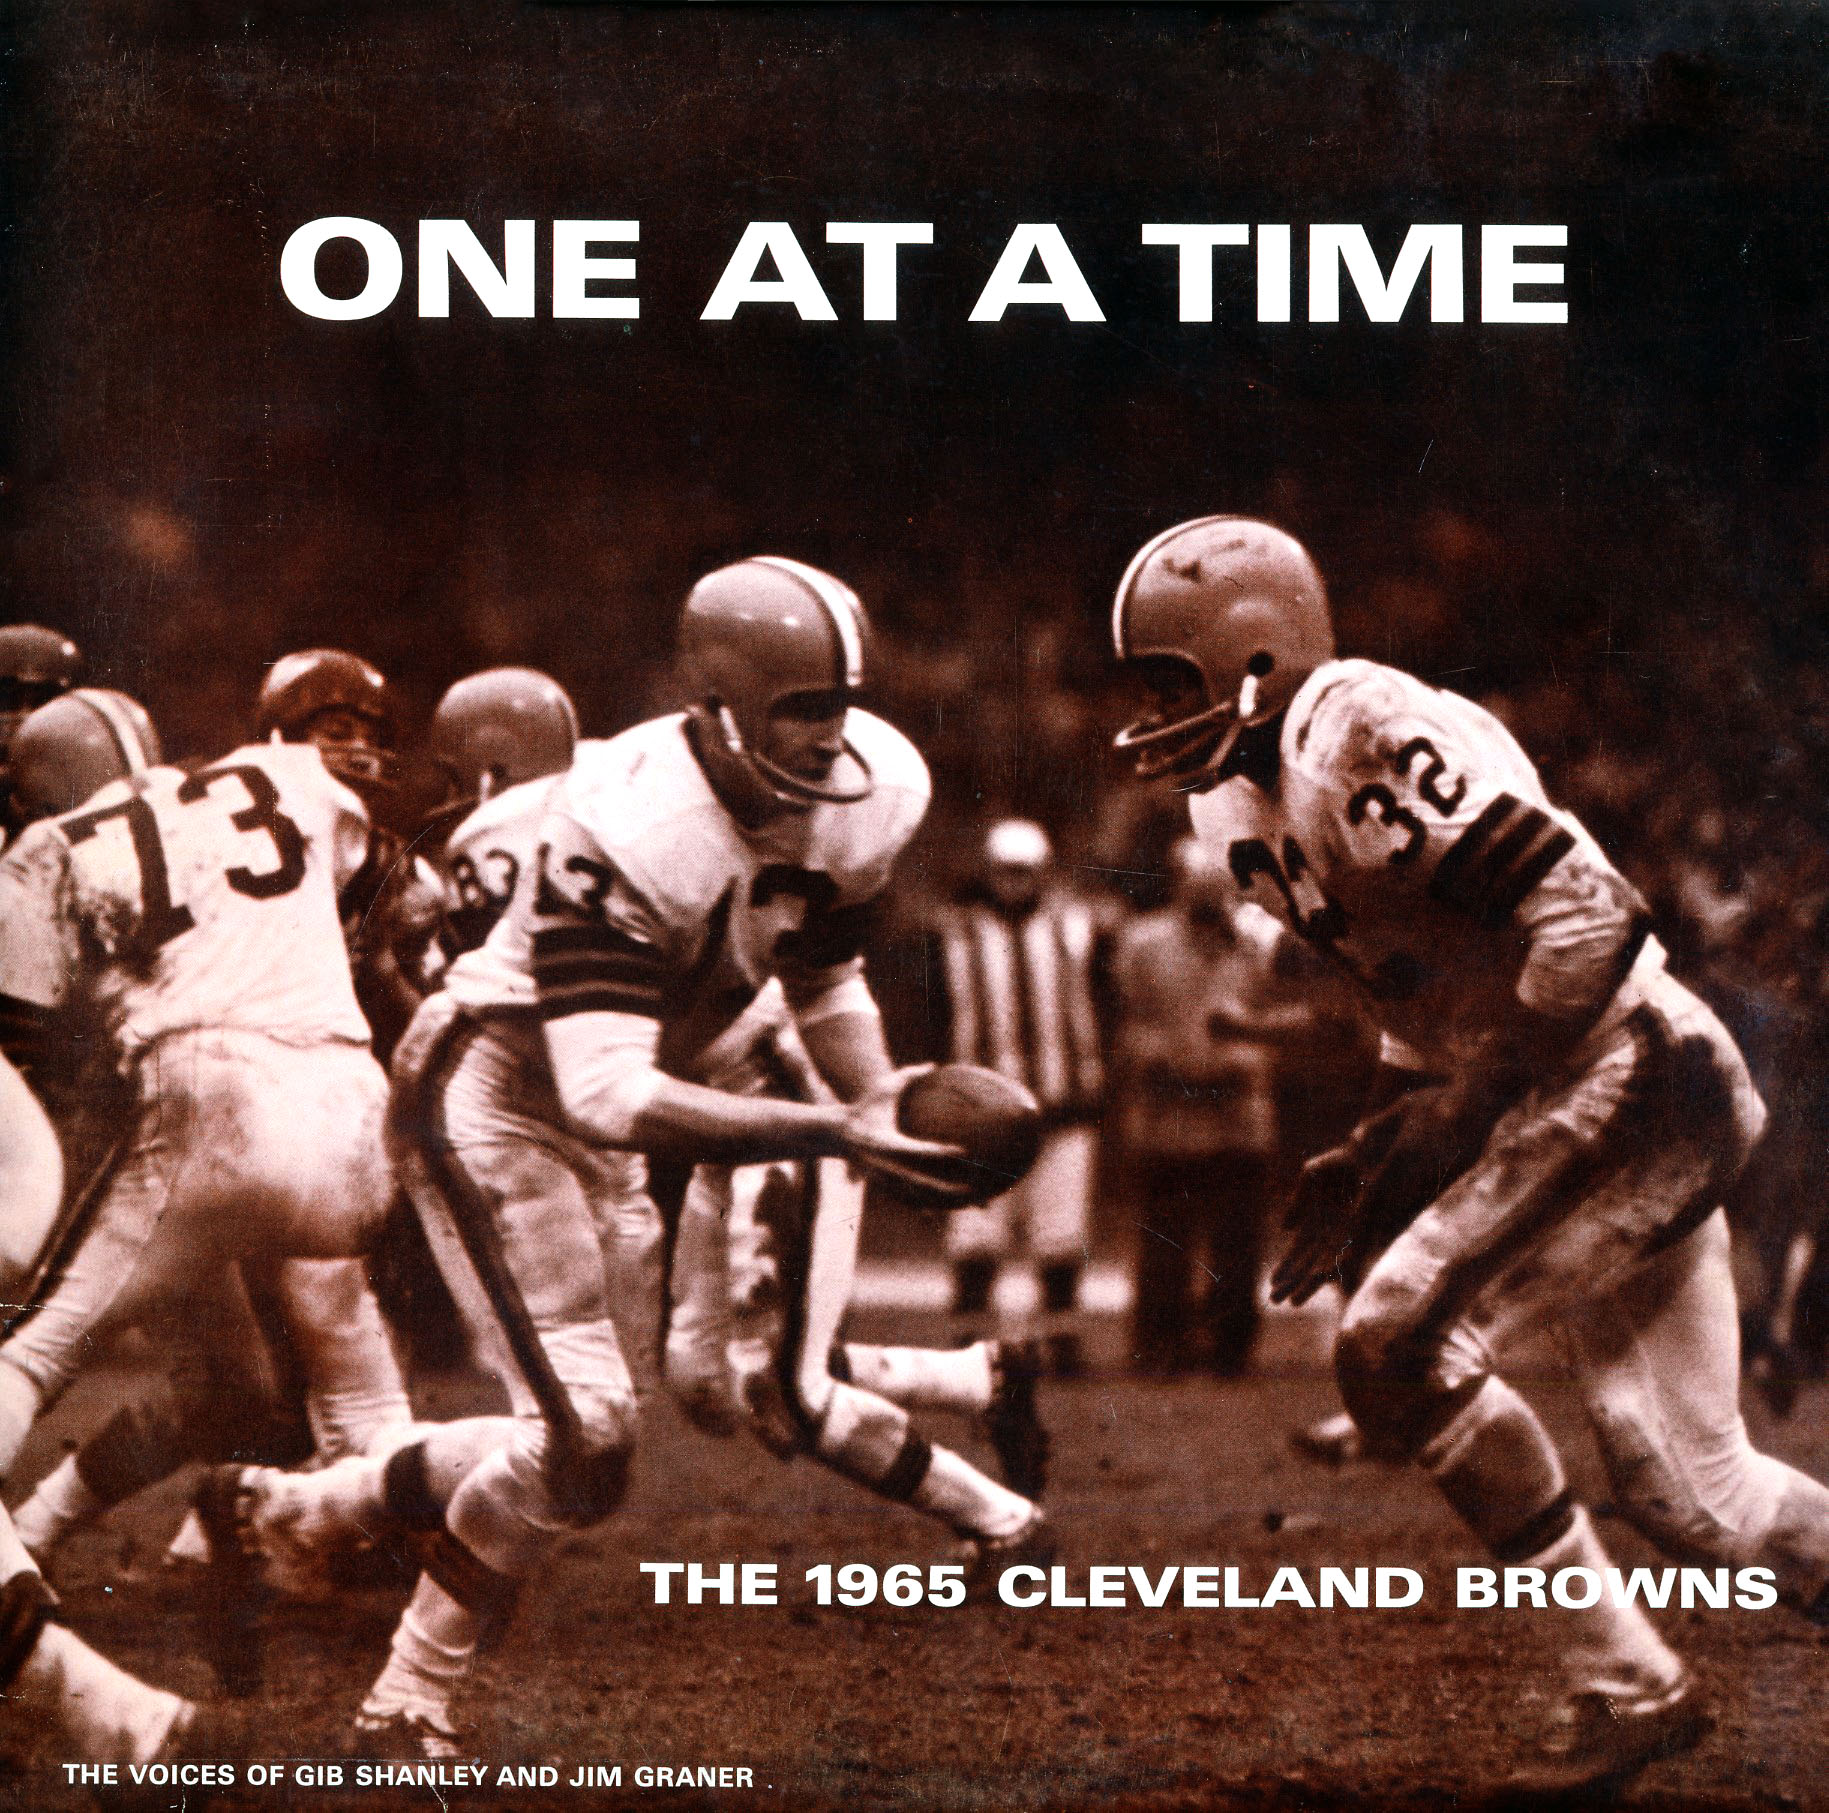 PLLP175 - One At A Time - 1965 Cleveland Browns on CD